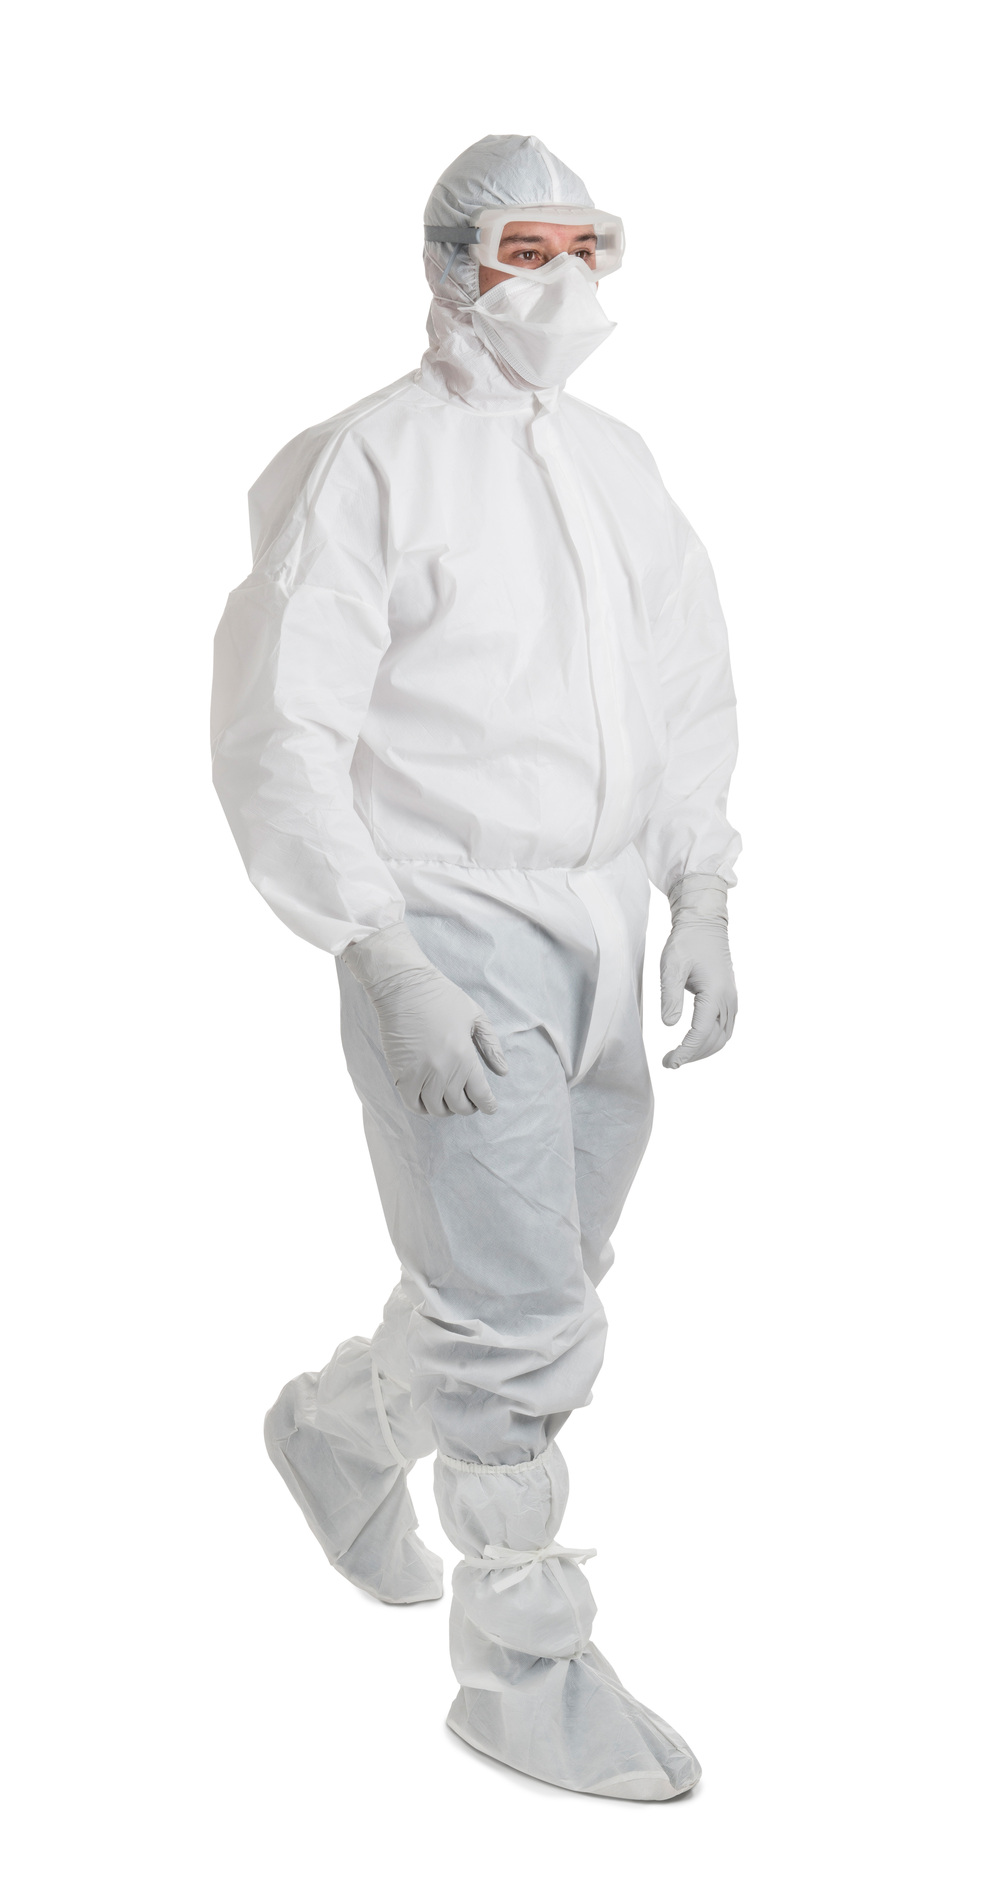 Kimtech™ A6 Breathable Liquid Protection Coveralls (47685), Covered Zipper, Elastic Cuffs, Thumb Loops, Hood, White, 2XL, 25 / Case - 47685